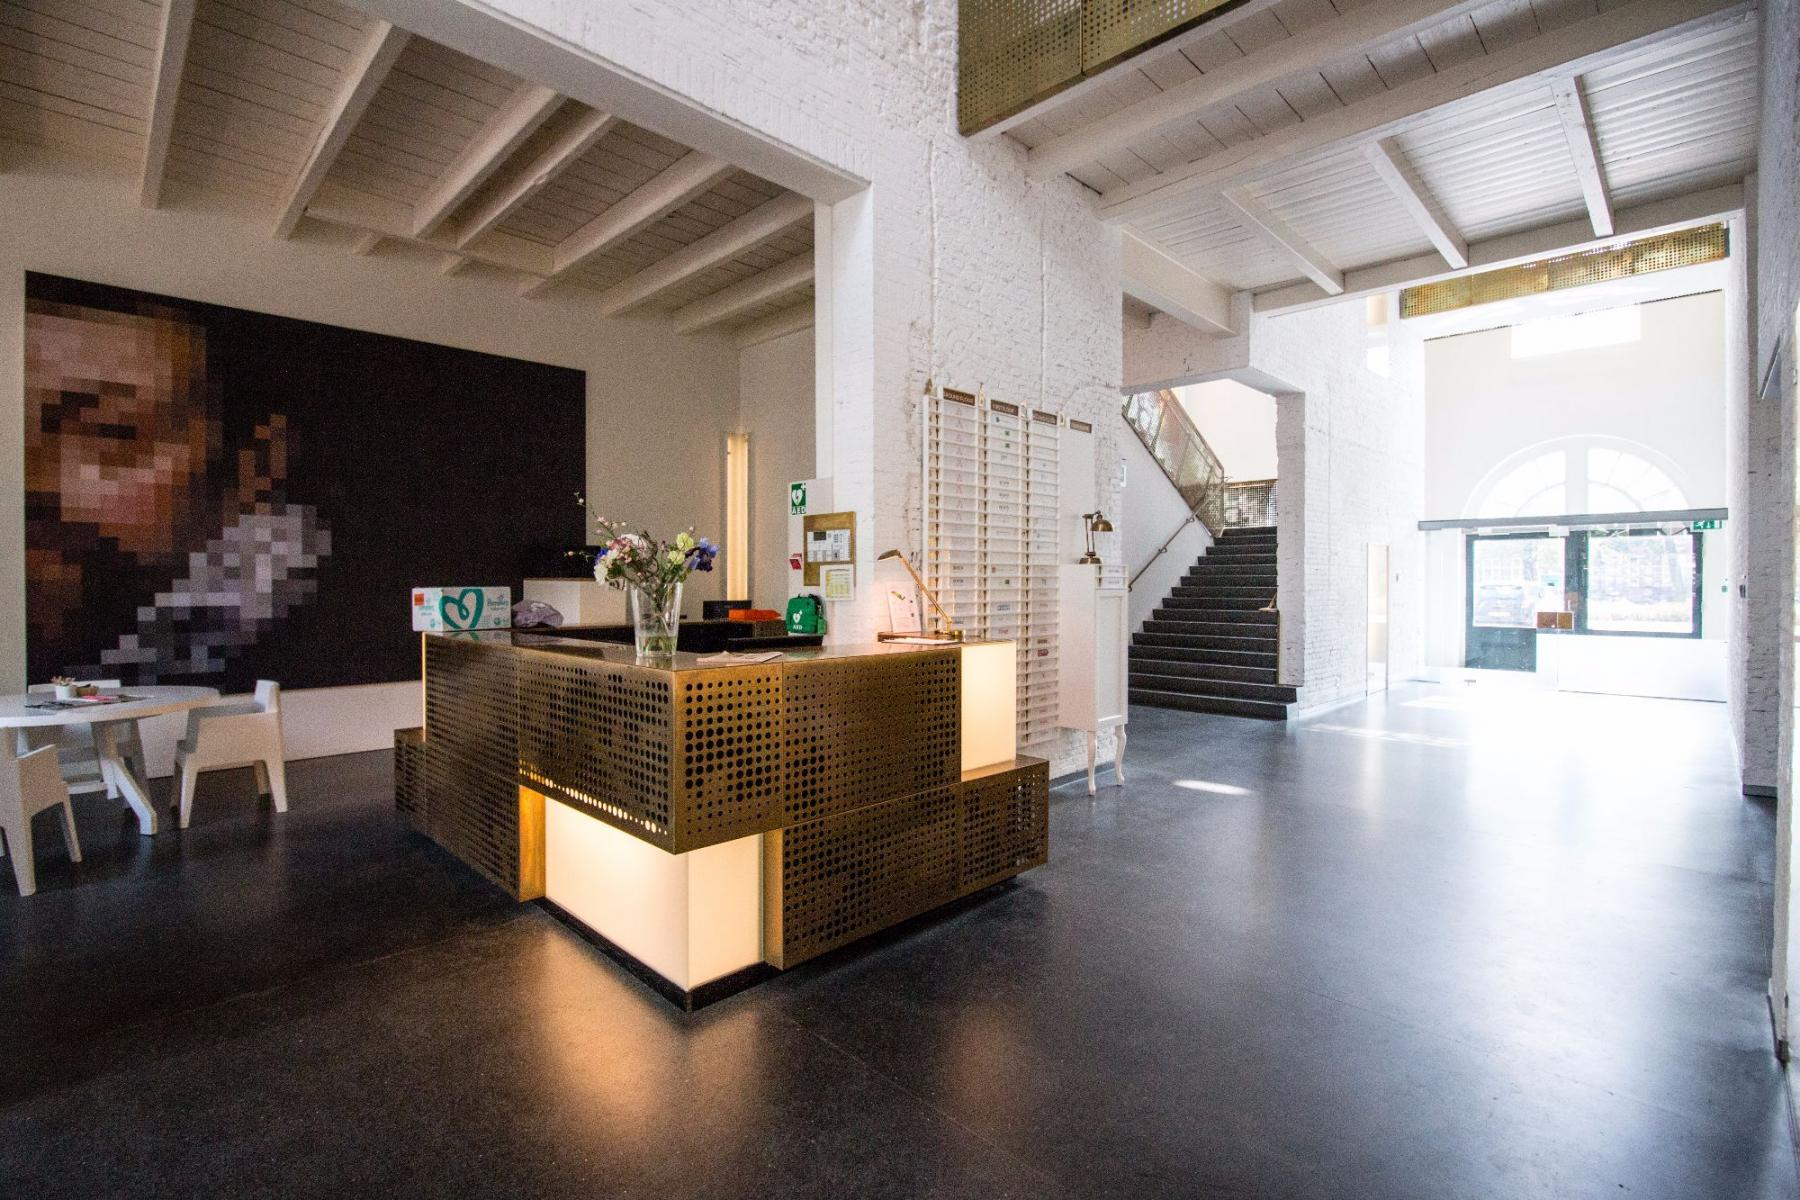 reception desk office building Amsterdam art painting